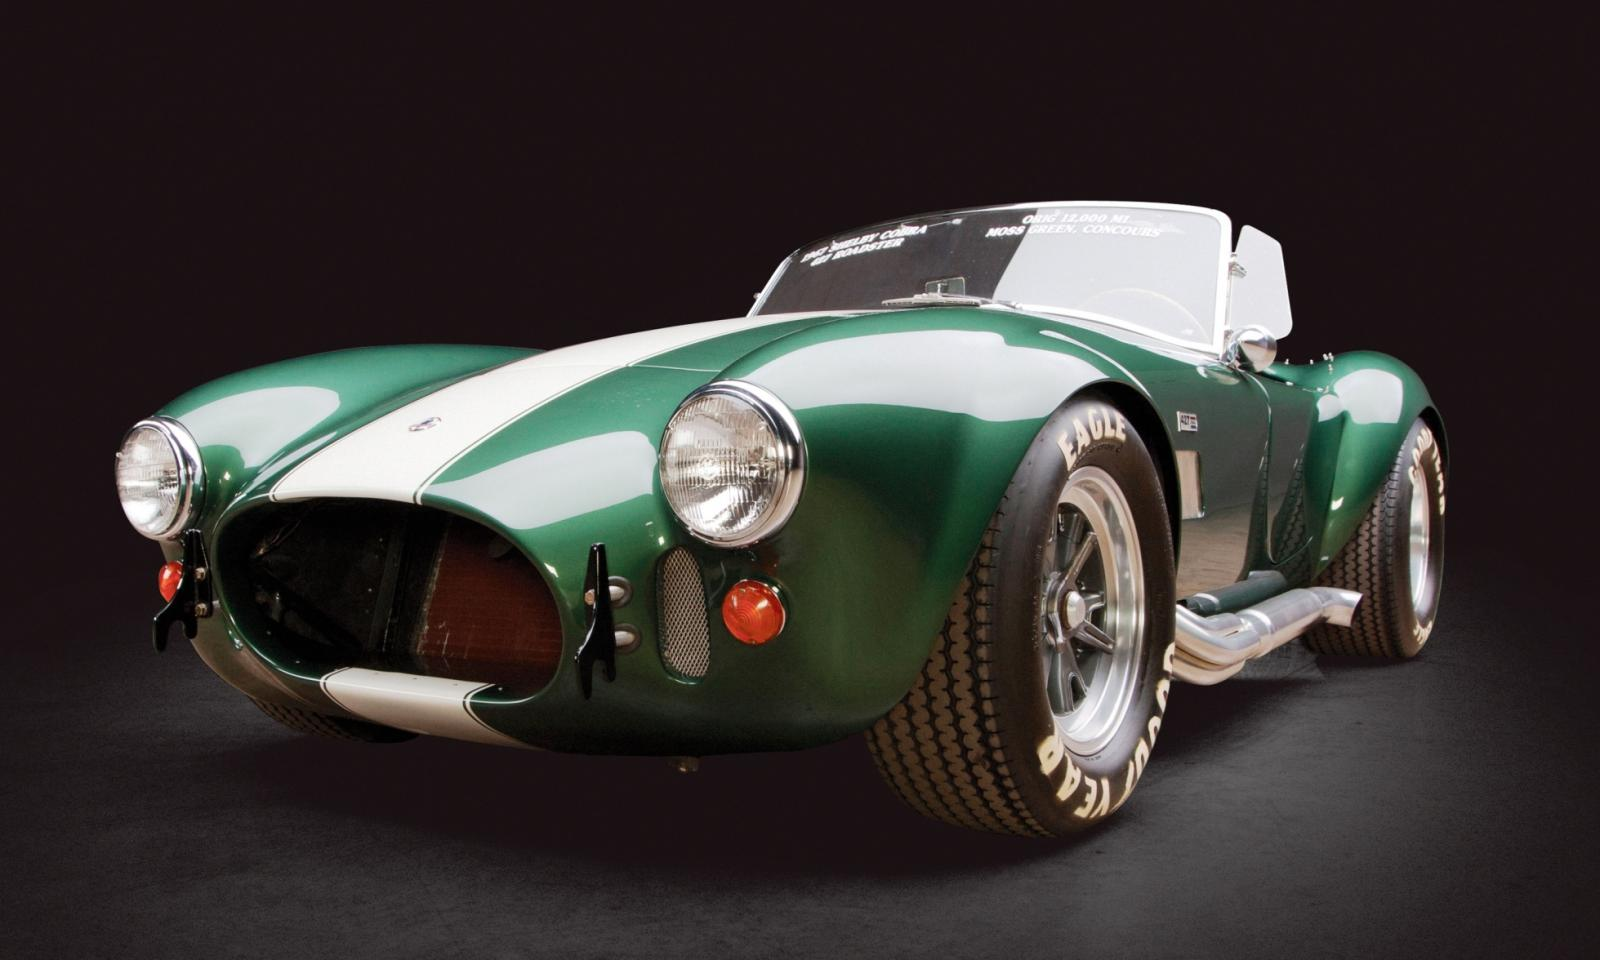 Rm Dallas Preview - ORIGINAL 1967 Shelby 427 Cobra Estimated at $1MM+ 13